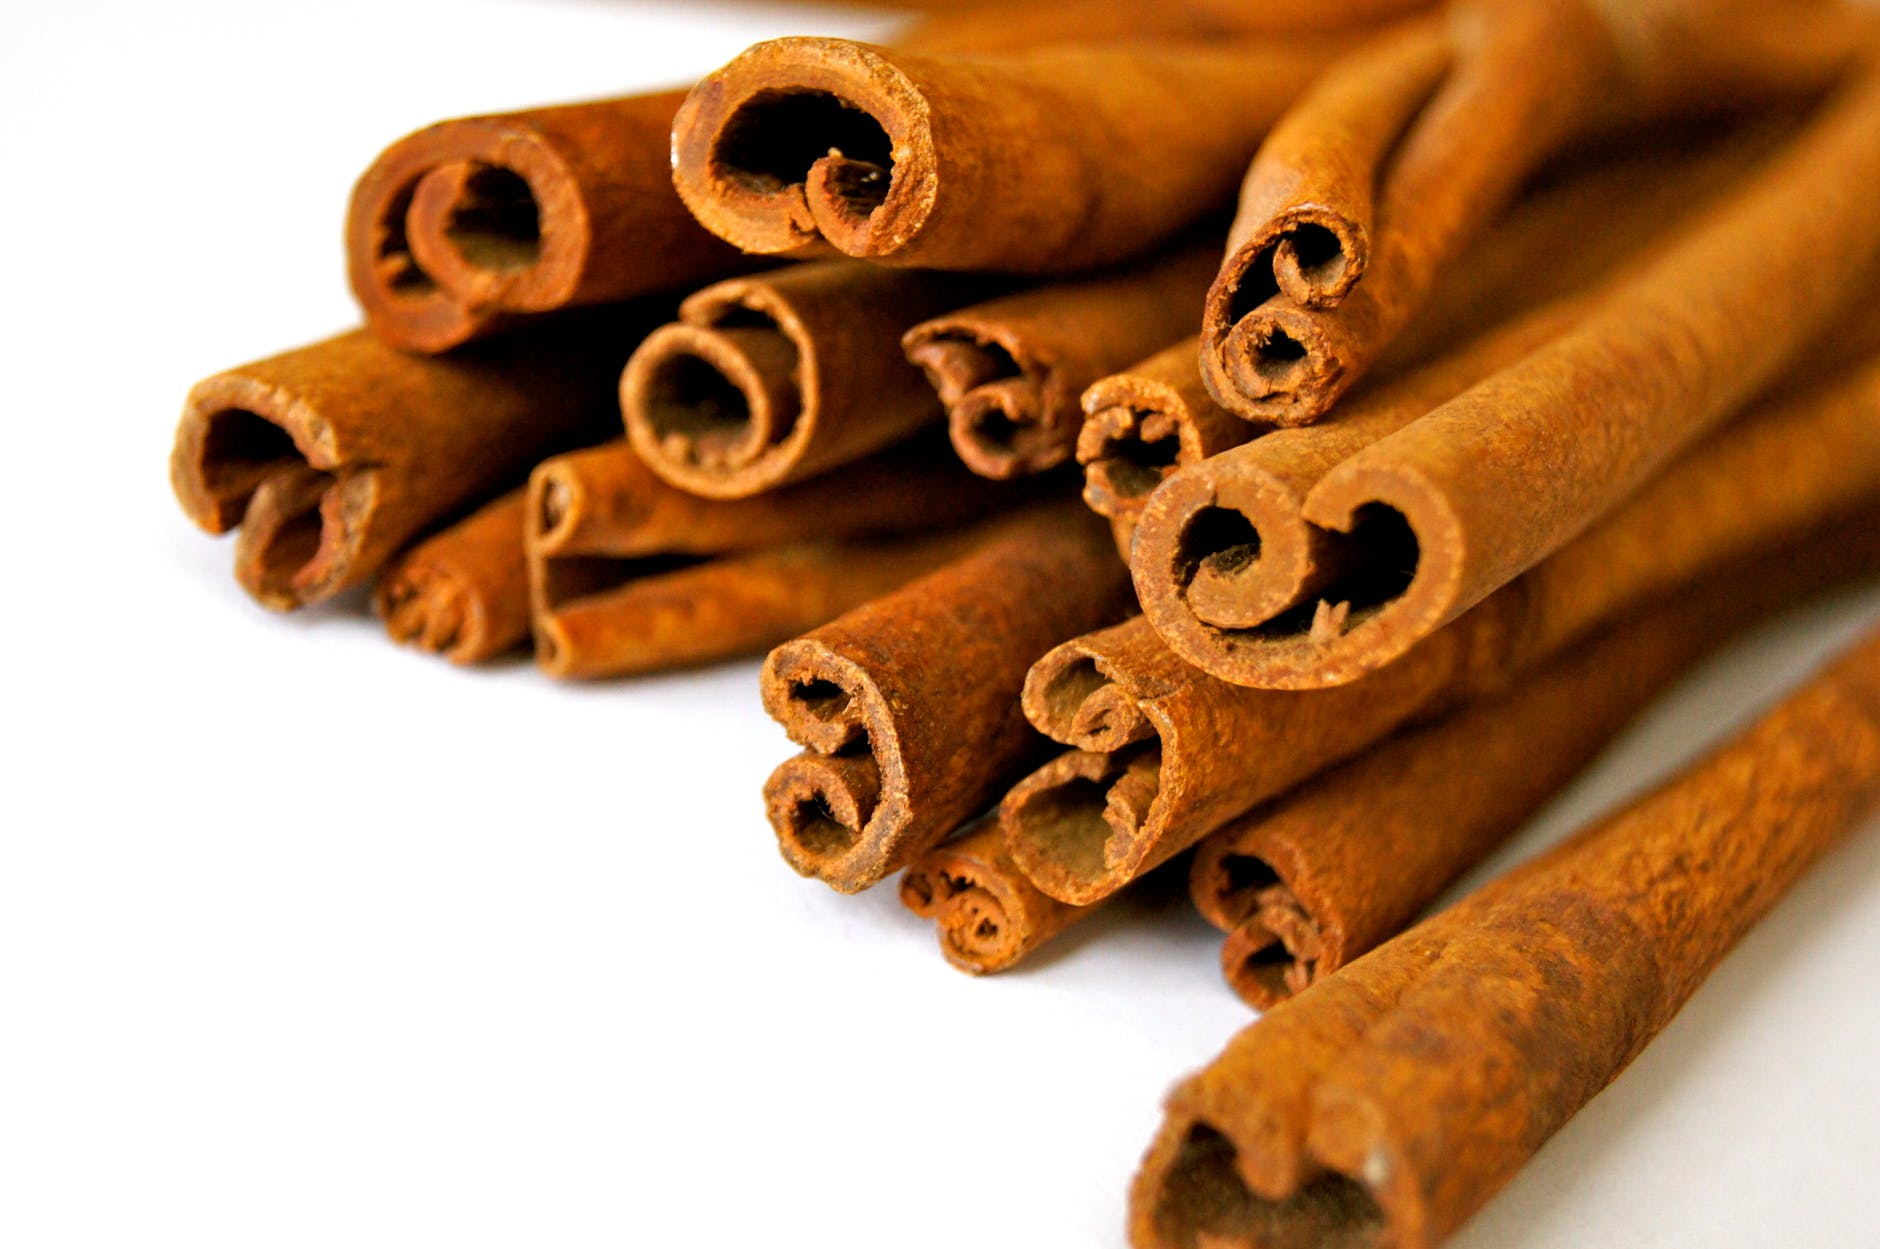 Isn't all cinnamon just cinnamon? Not quite; there are different types of trees, which are specific to different areas. Thus by specifying the location (Ceylon vs Vietnam, for example), the consumer will better know the flavor). Read more.